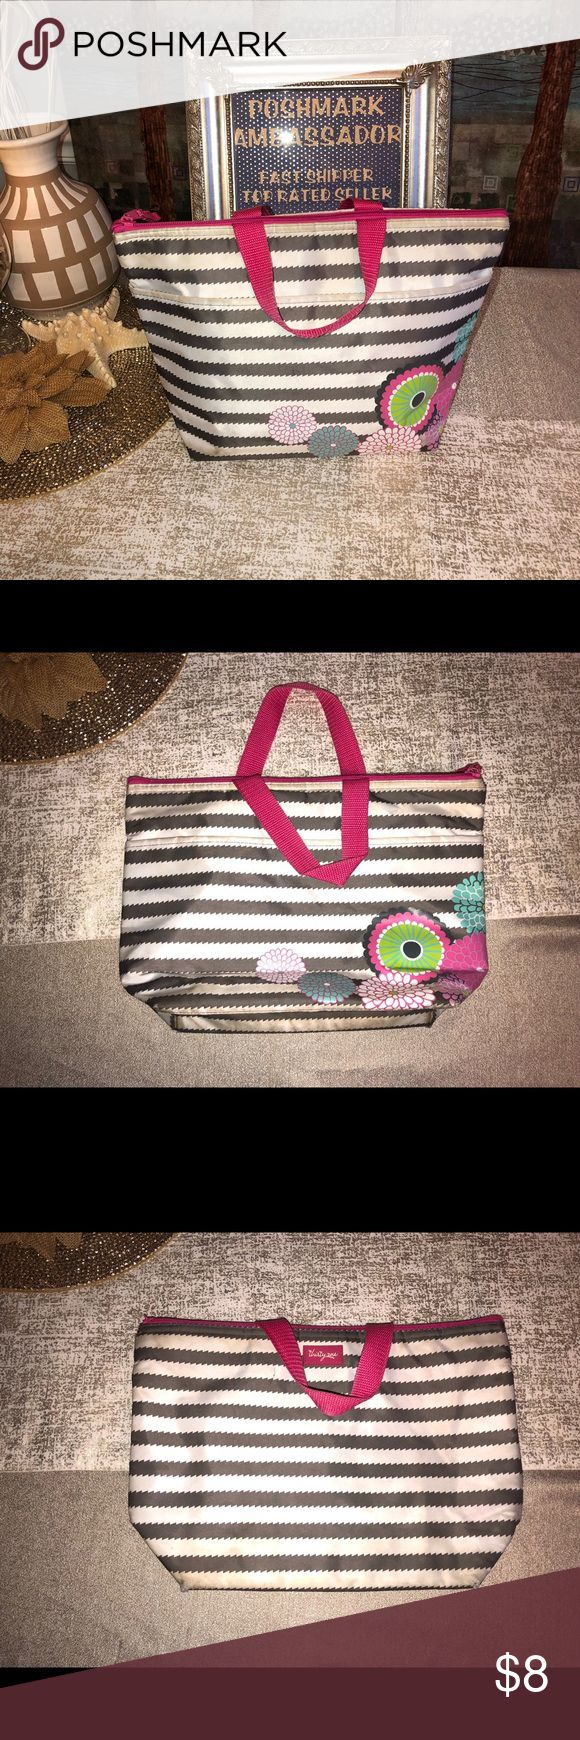 """🐝🐝Thirty One Lunch Tote Thirty One Lunch Tote. Wear at the corners so this one is included in the spring closet clear out. Grey and white bubble bloom print. Apx 9.5"""" H x 14"""" L x 4.5"""" D.   Included in the 5 for $15 Spring Closet Clear Out Sale. Just add 5 items marked 🐝🐝 and offer $15. I will accept.   Bin 18 Thirty-one Bags Totes"""